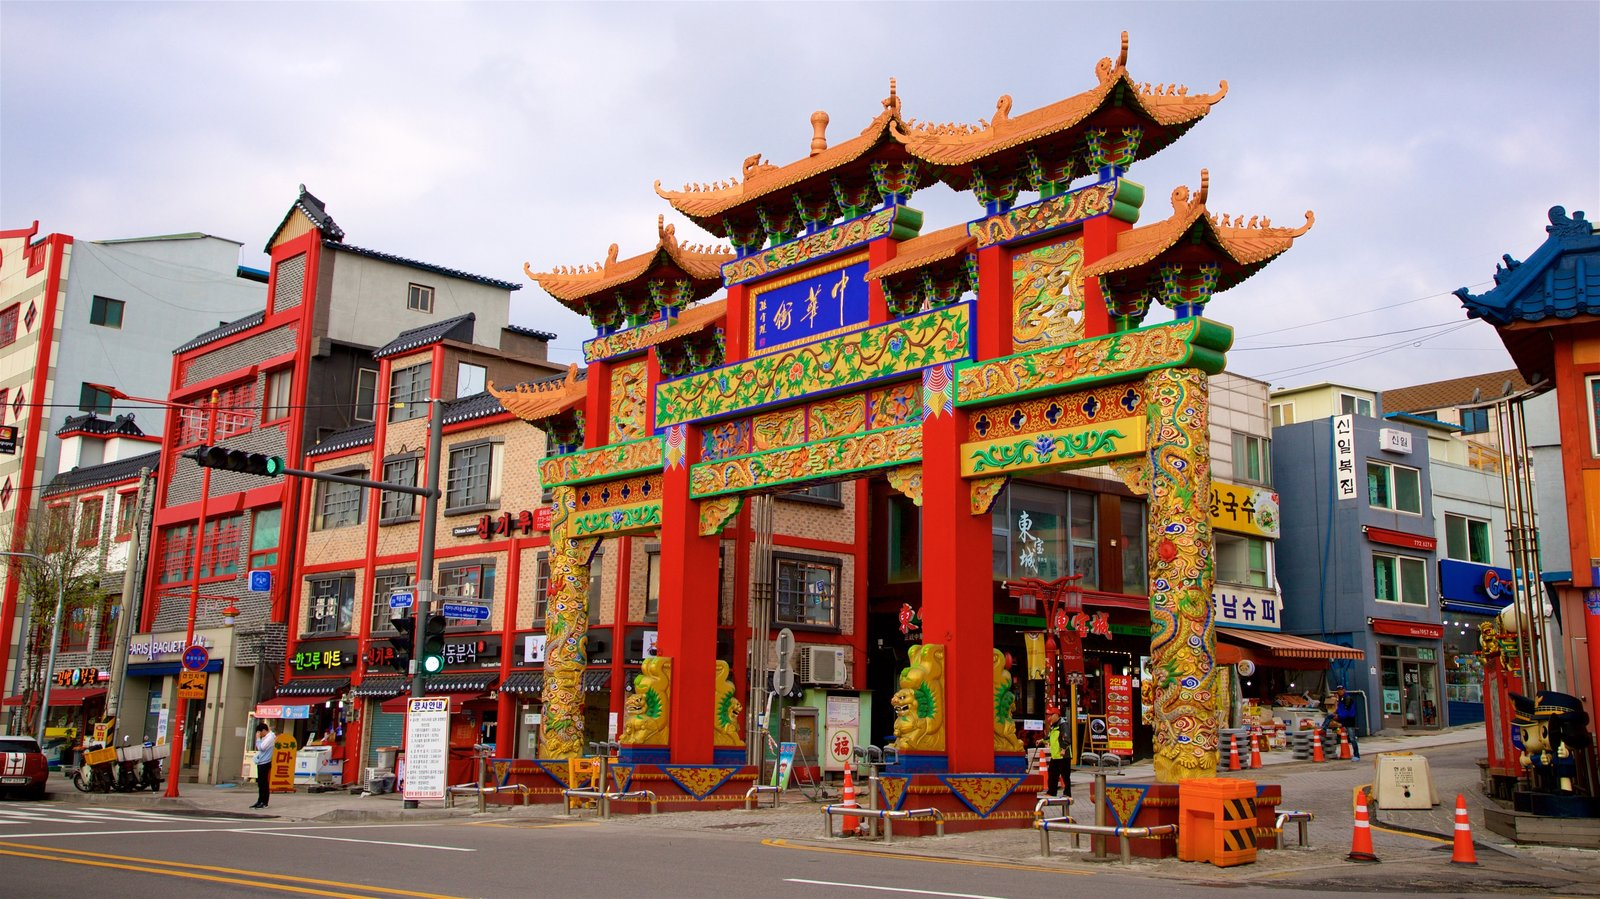 Chinatown showing signage and heritage elements